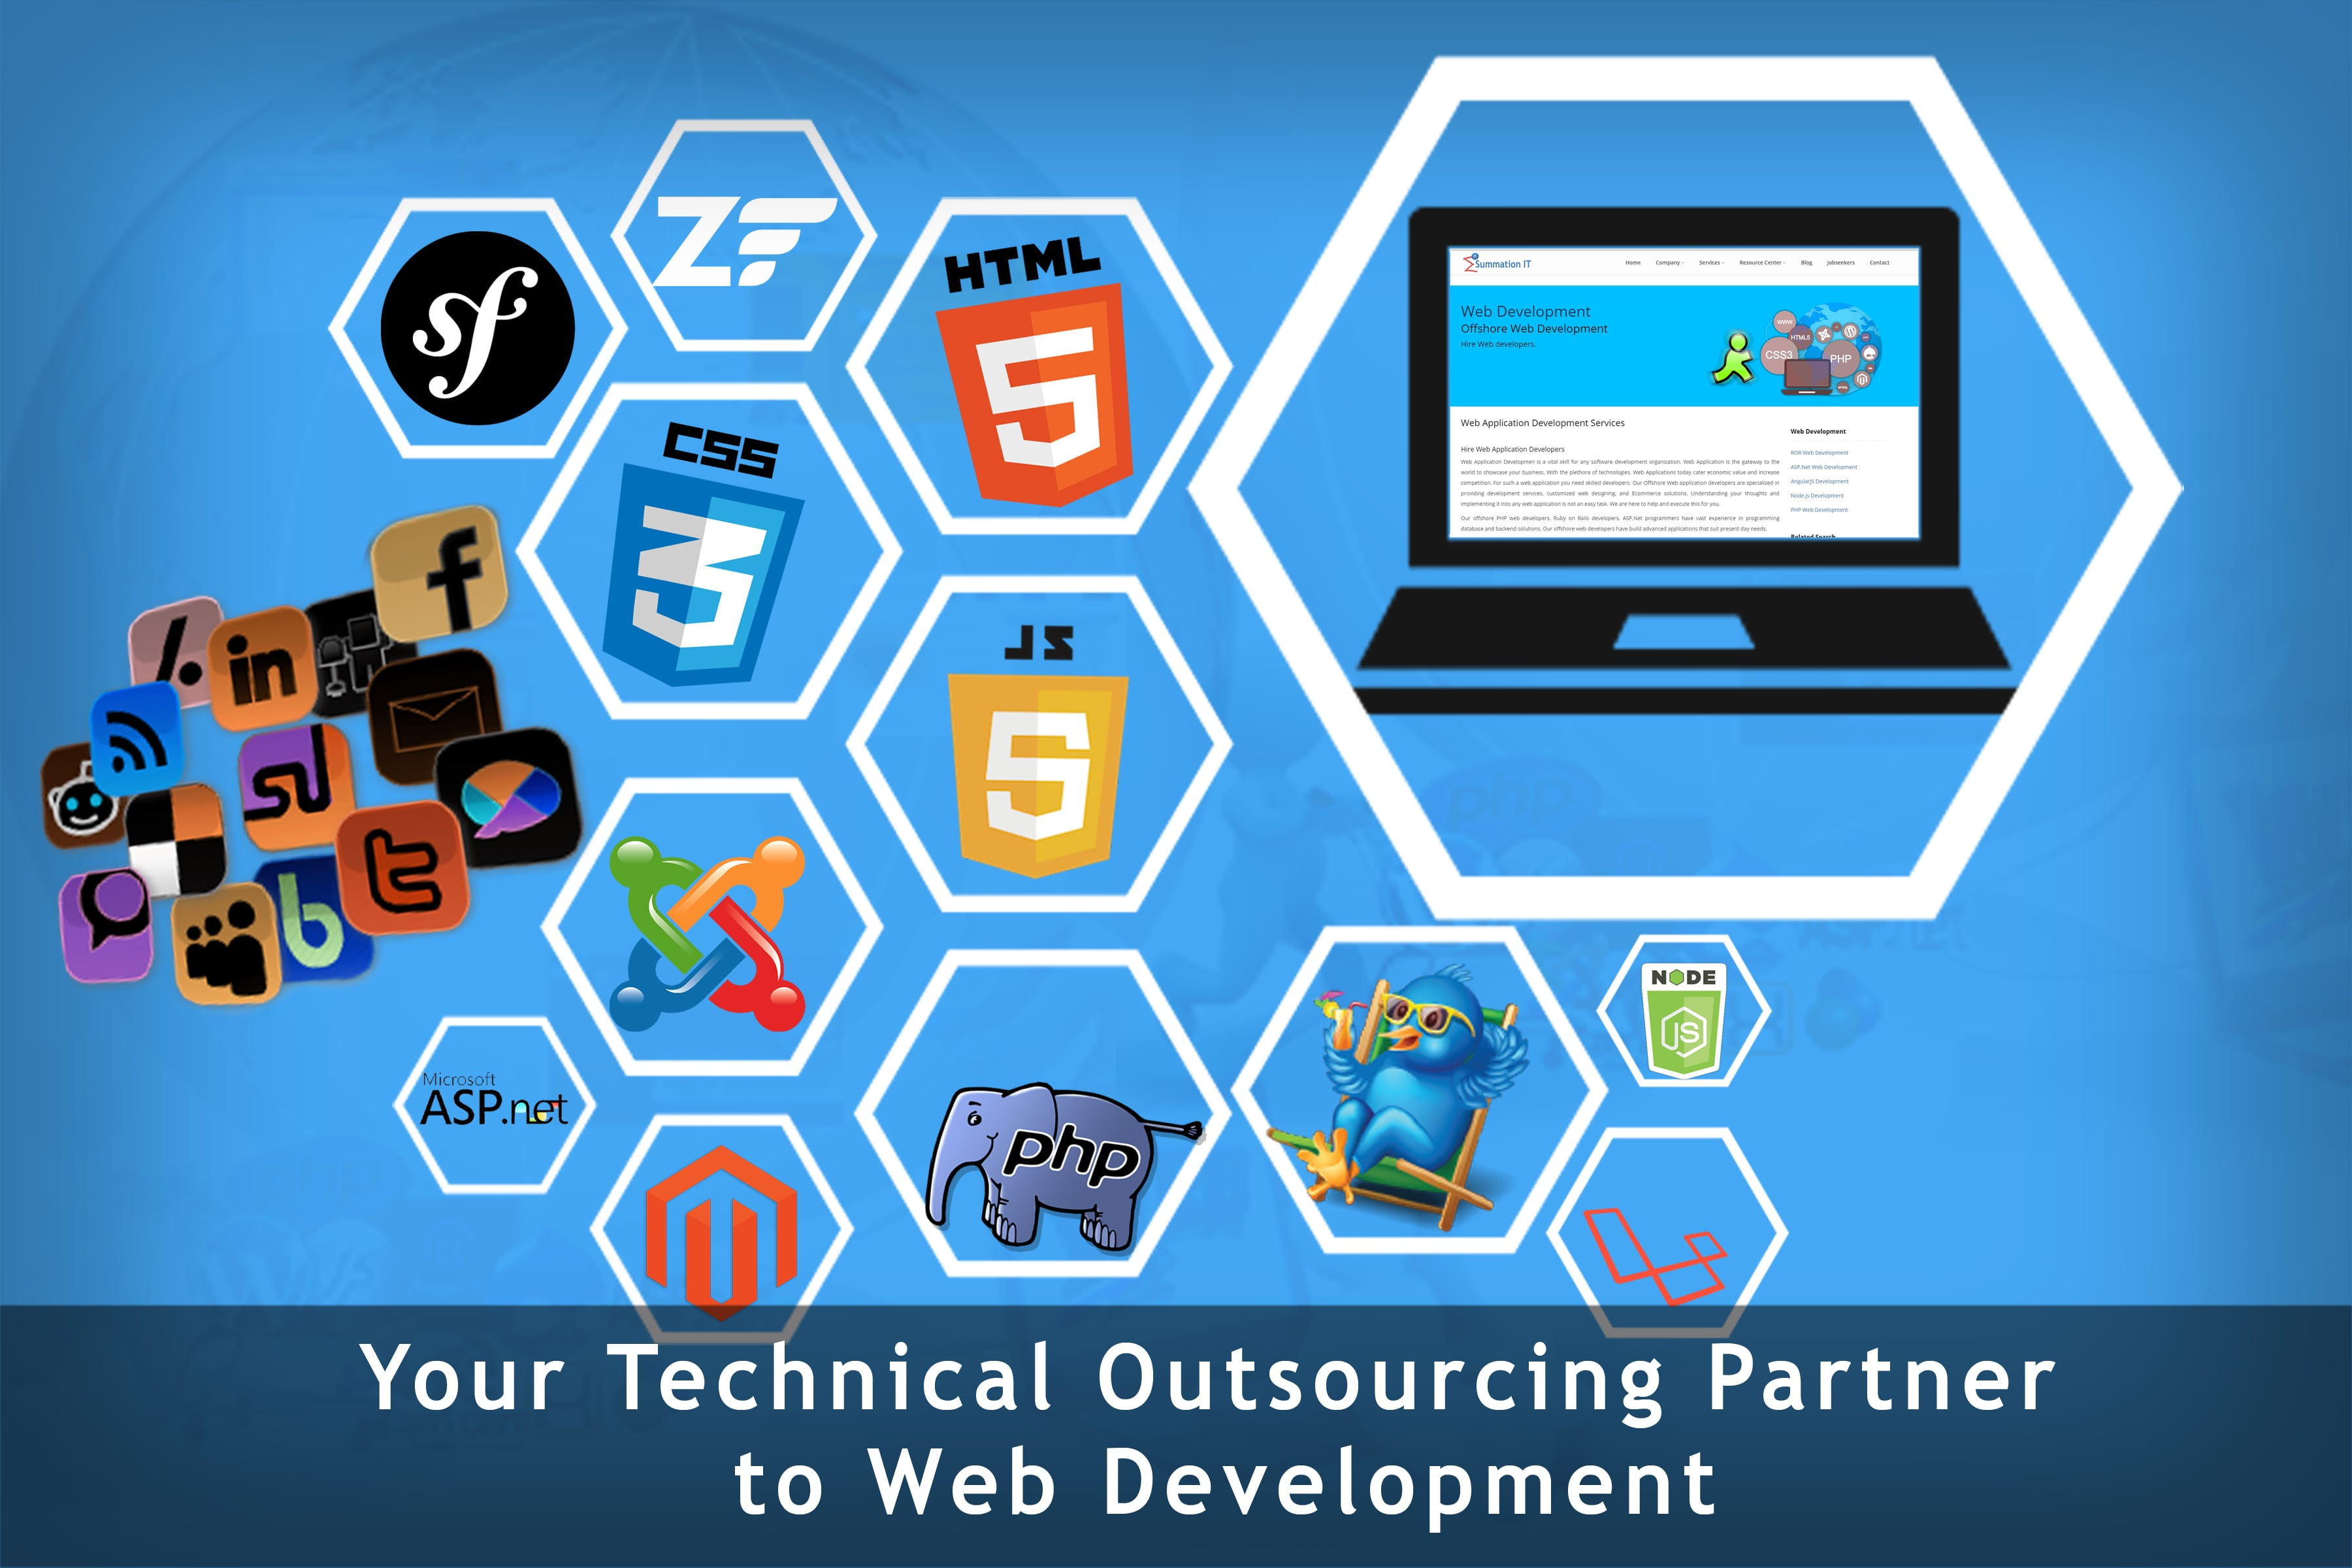 Your Technical Outsourcing Partner to Web Development